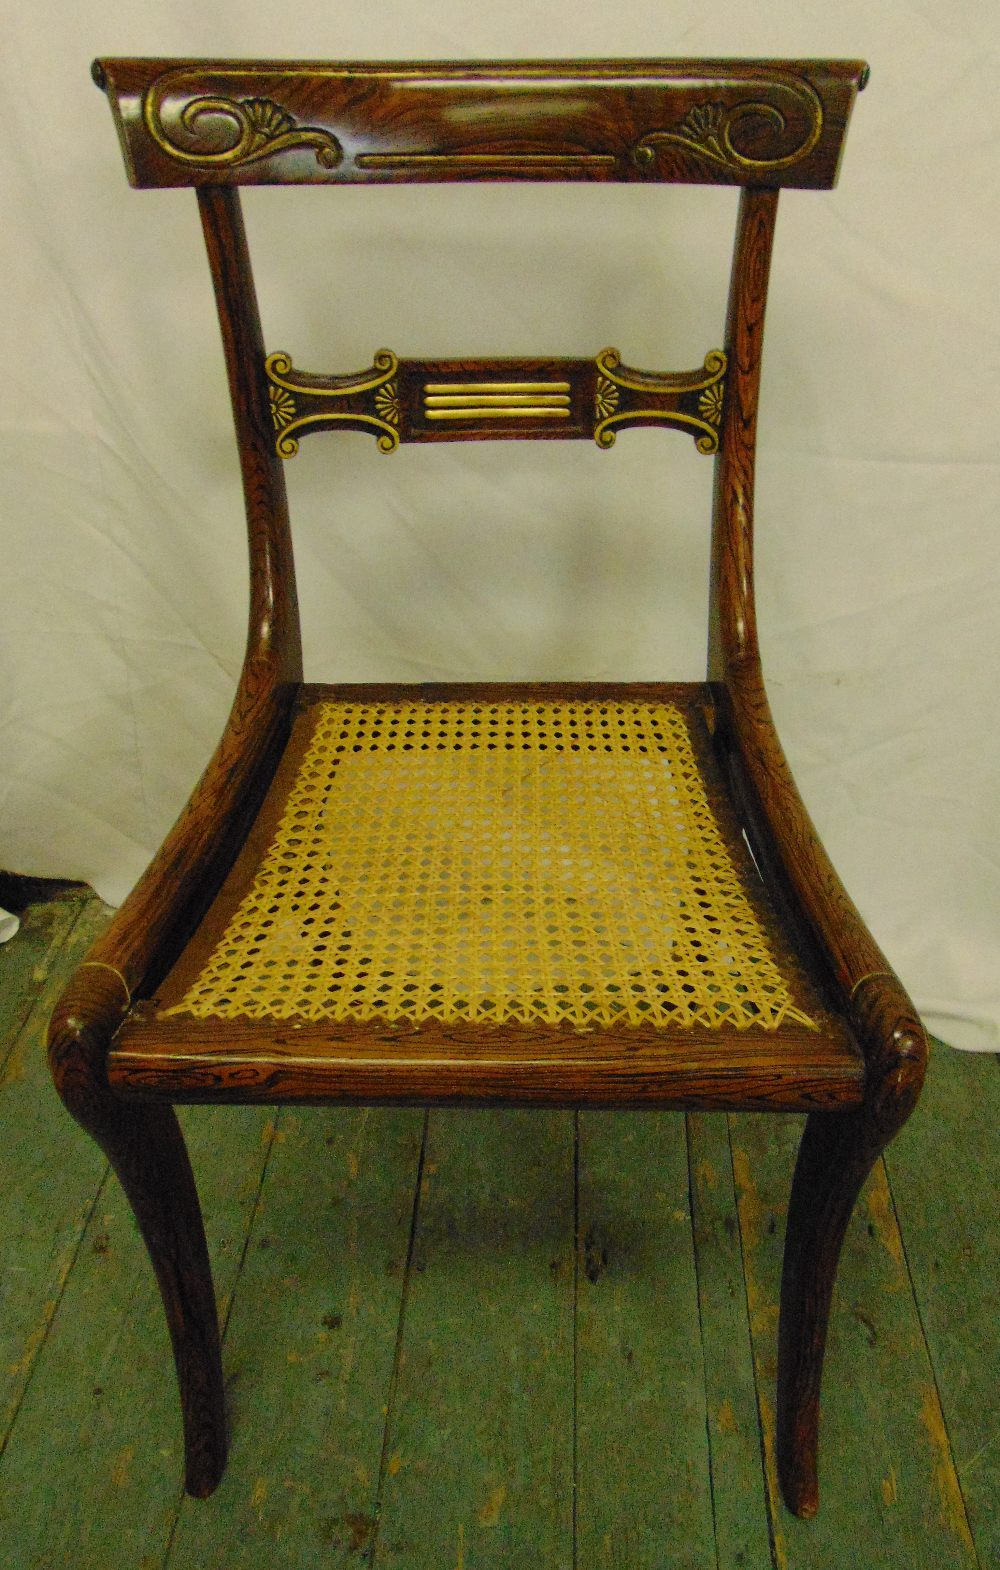 Lot 25 - A late 19th century mahogany occasional chair with caned seat